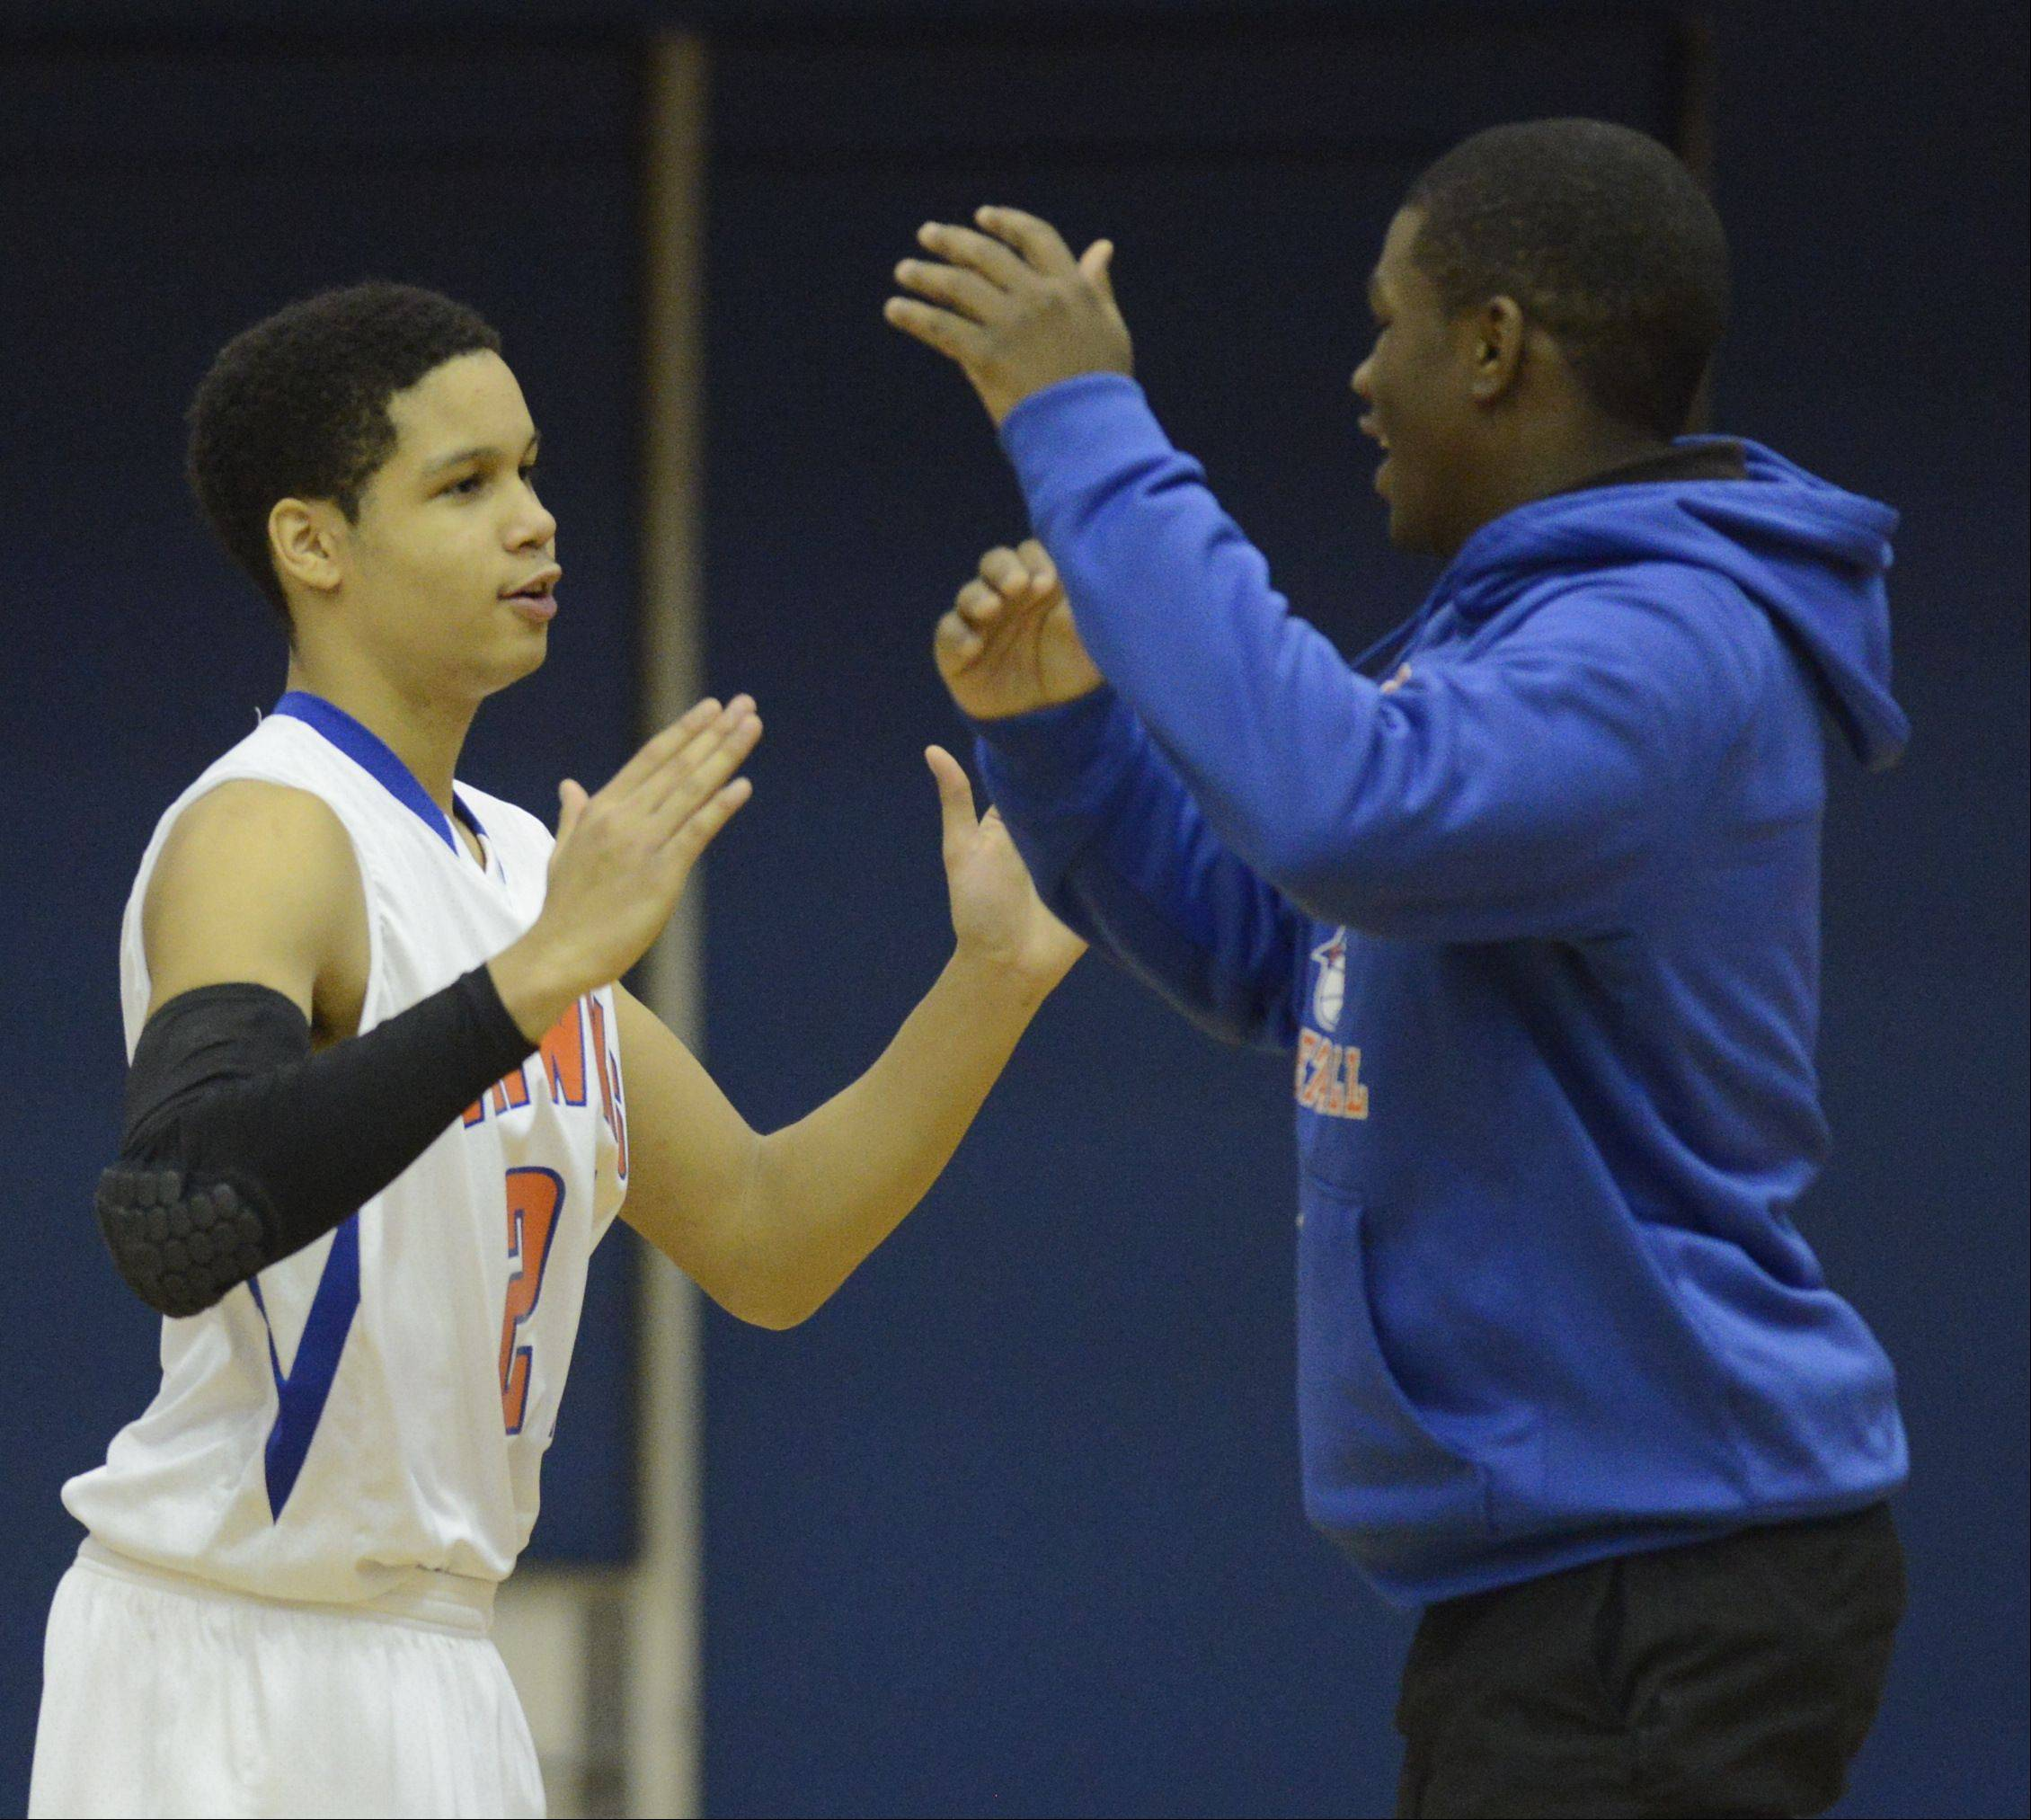 Images from the Prospect vs. Hoffman Estates boys basketball game on Tuesday, December 18th, in Hoffman Estates.